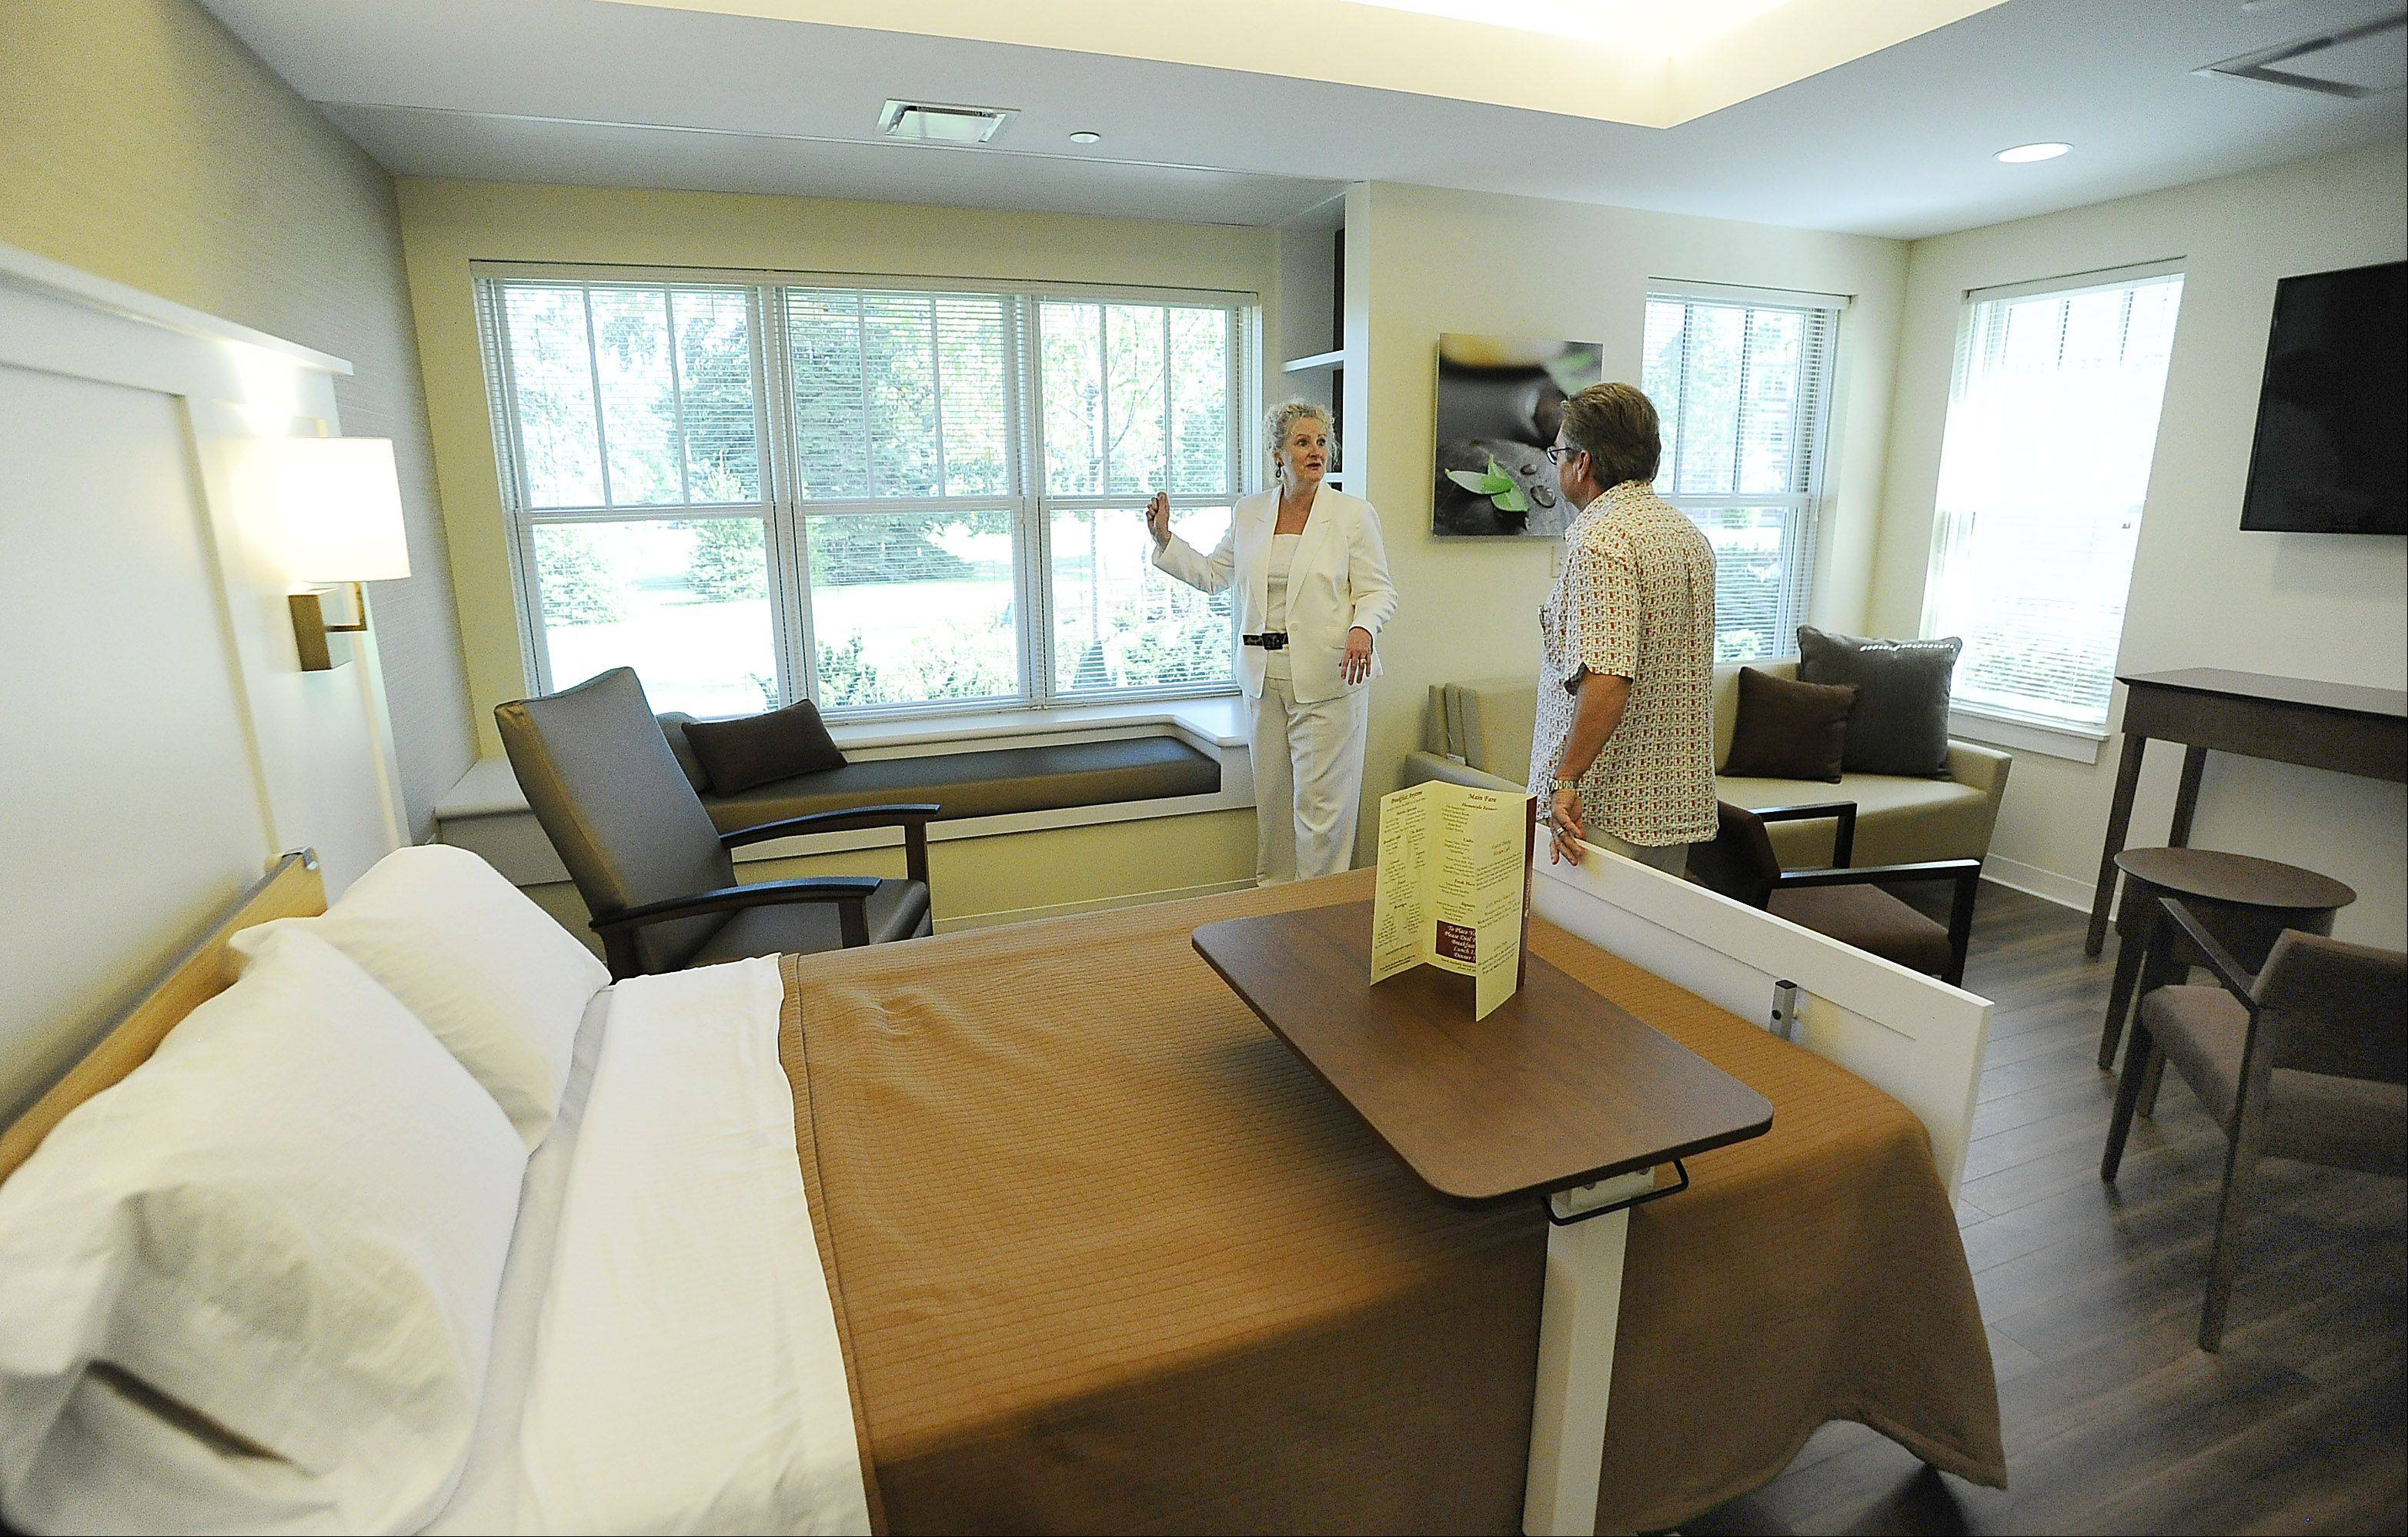 Joan Scheffler, assistant vice president of the Alexian Brothers Foundation shows off the new rooms at the Alexian Brothers Hospice Residence grand opening in Elk Grove on Friday.